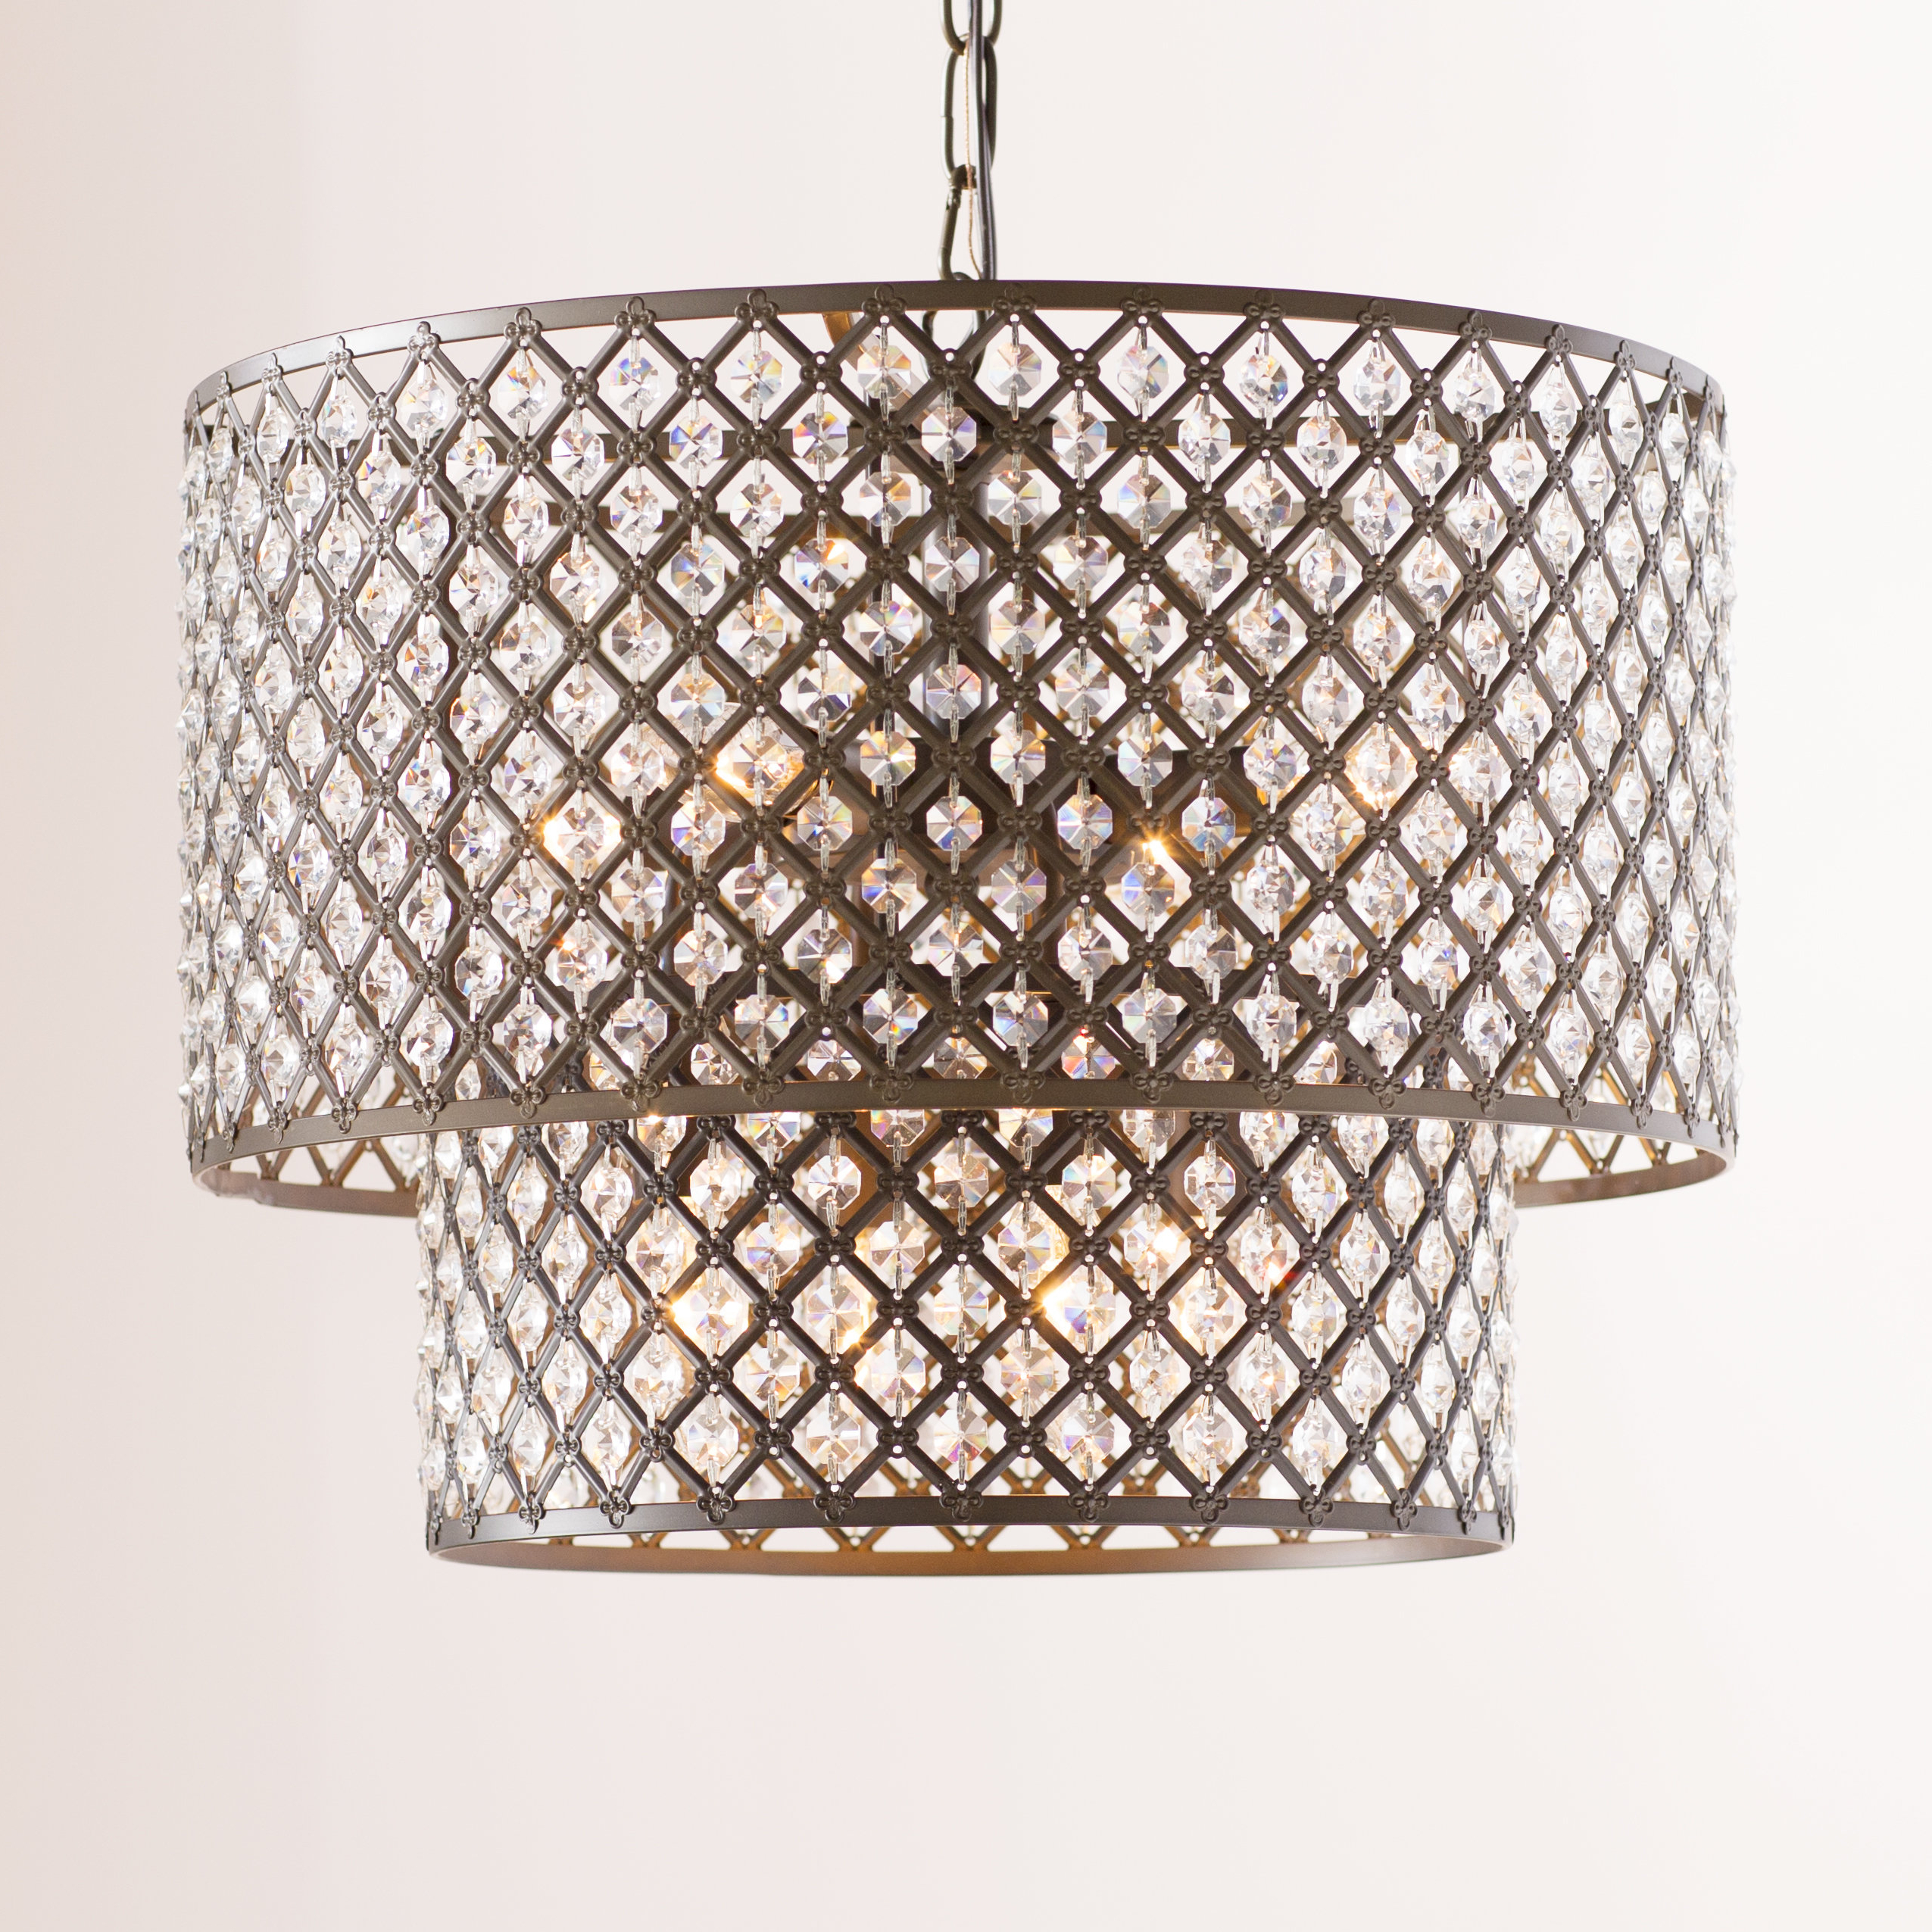 Best and Newest Maribel 8-Light Drum Chandelier intended for Gisselle 4-Light Drum Chandeliers